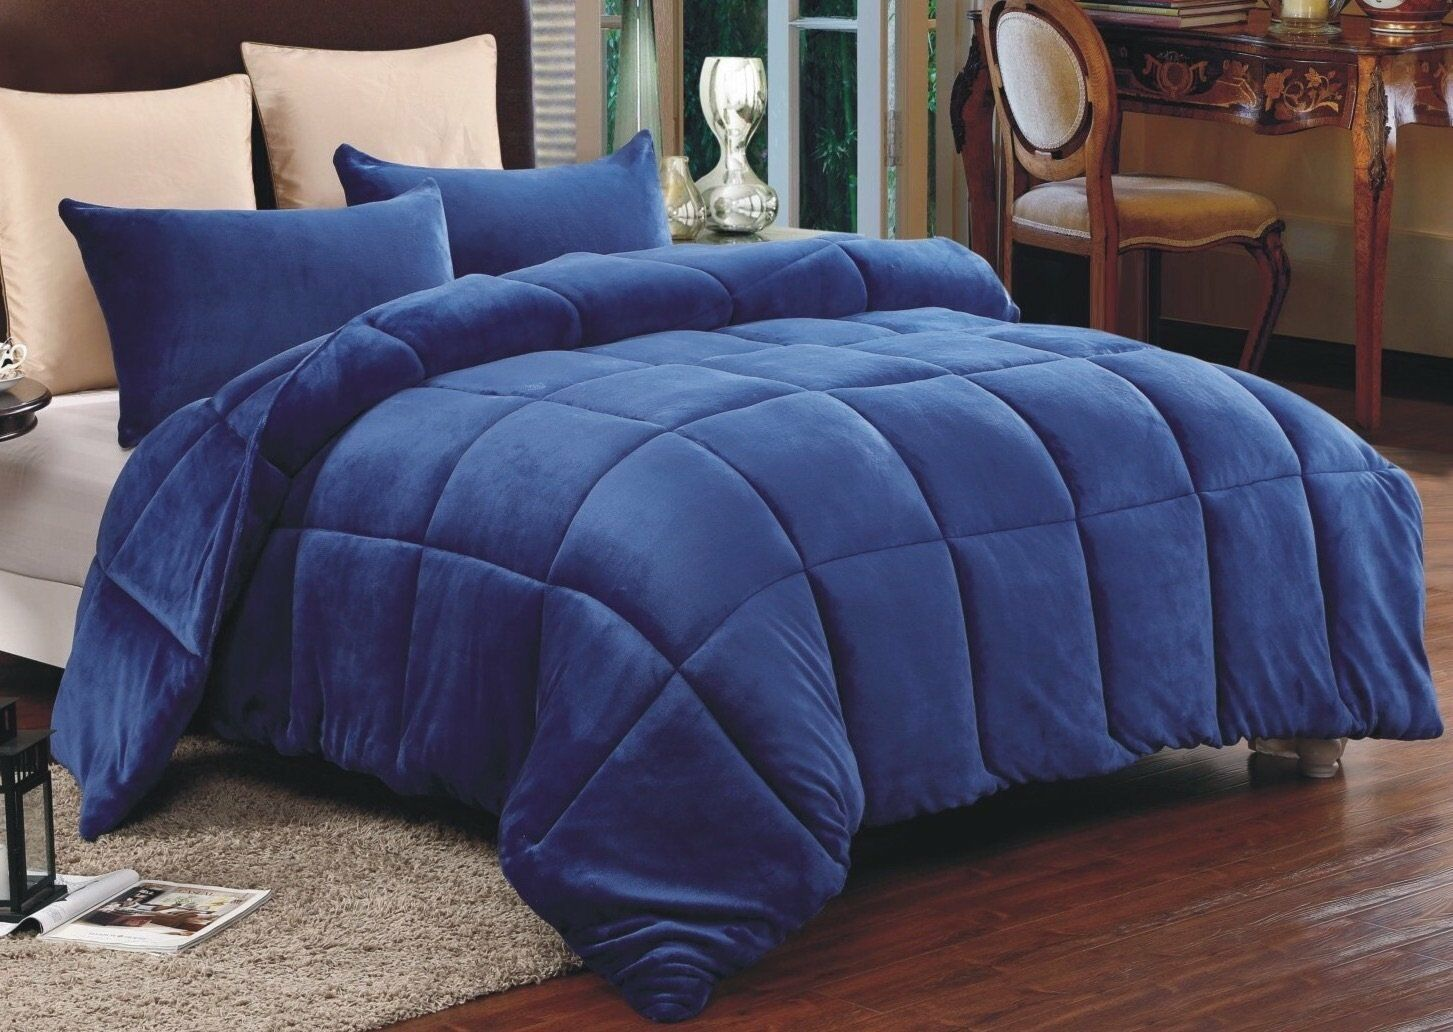 Down Alternative Supreme Plush Comforter Blanket Full Queen 3 PC Set Navy blu